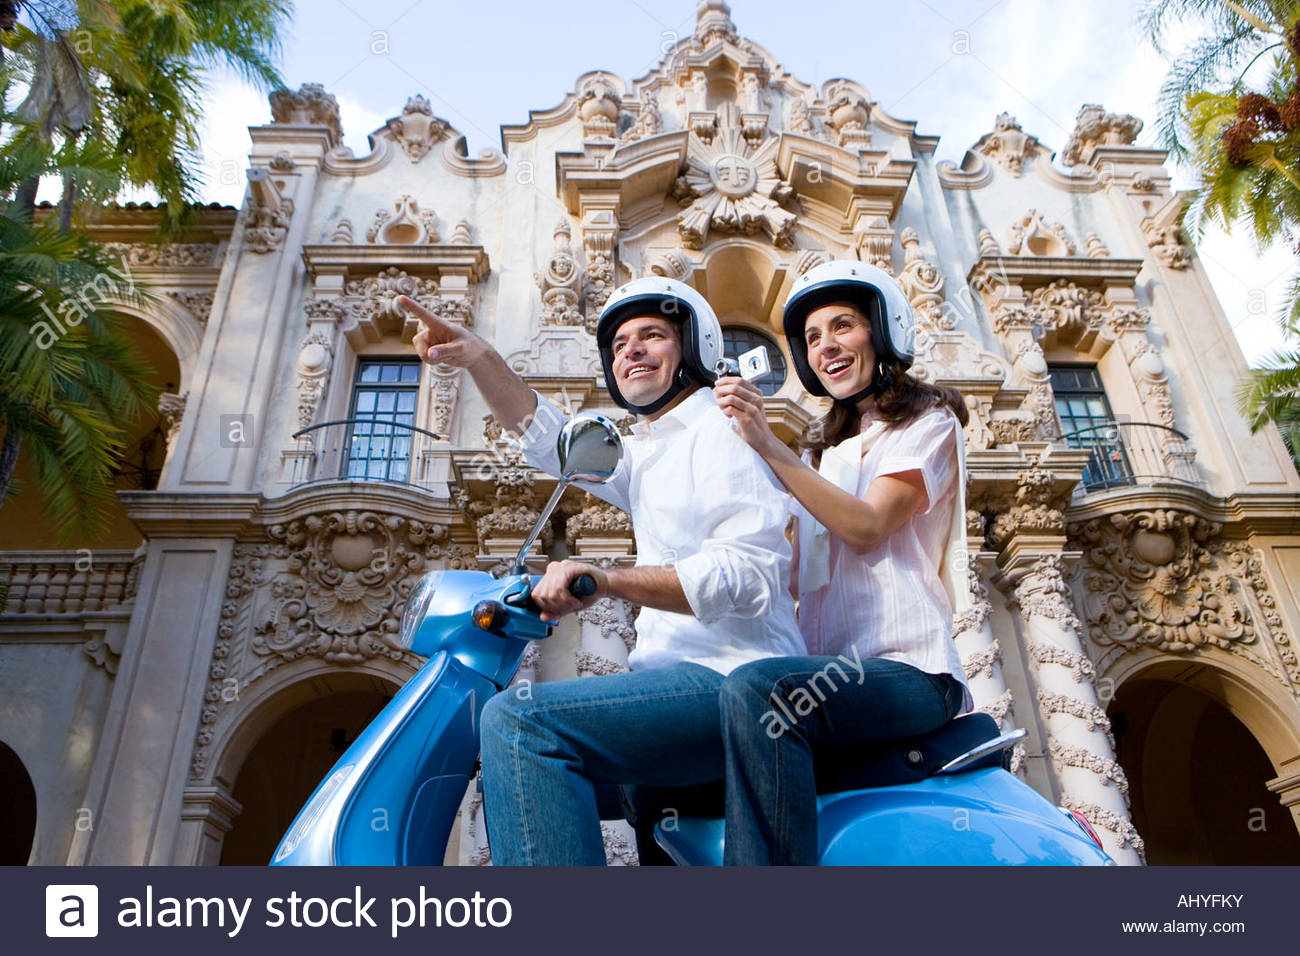 Couple riding on blue motor scooter, woman filming with video camera, smiling, side view, low angle view - Stock Image